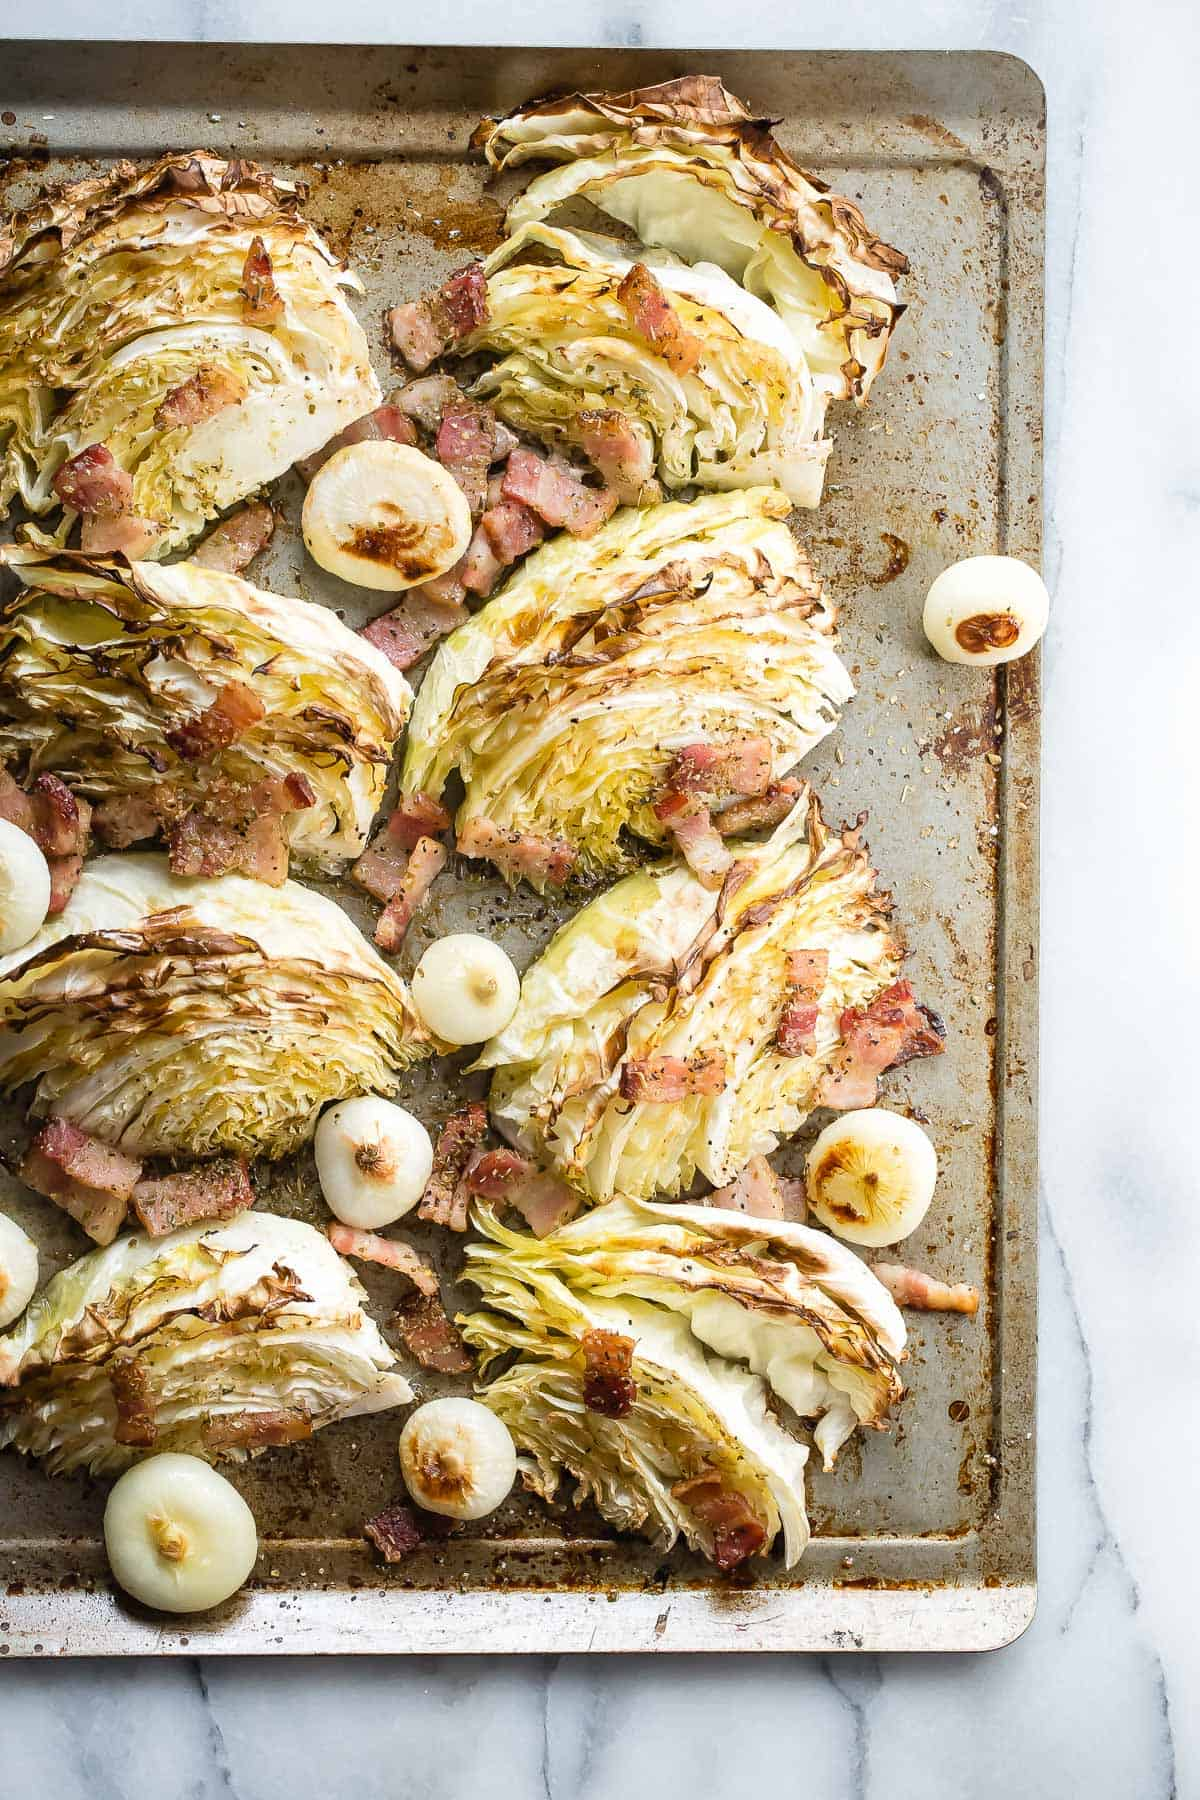 Roasted cabbage with chopped bacon bits, olive oil and cippolini onions. Perfect for St Patrick's Day